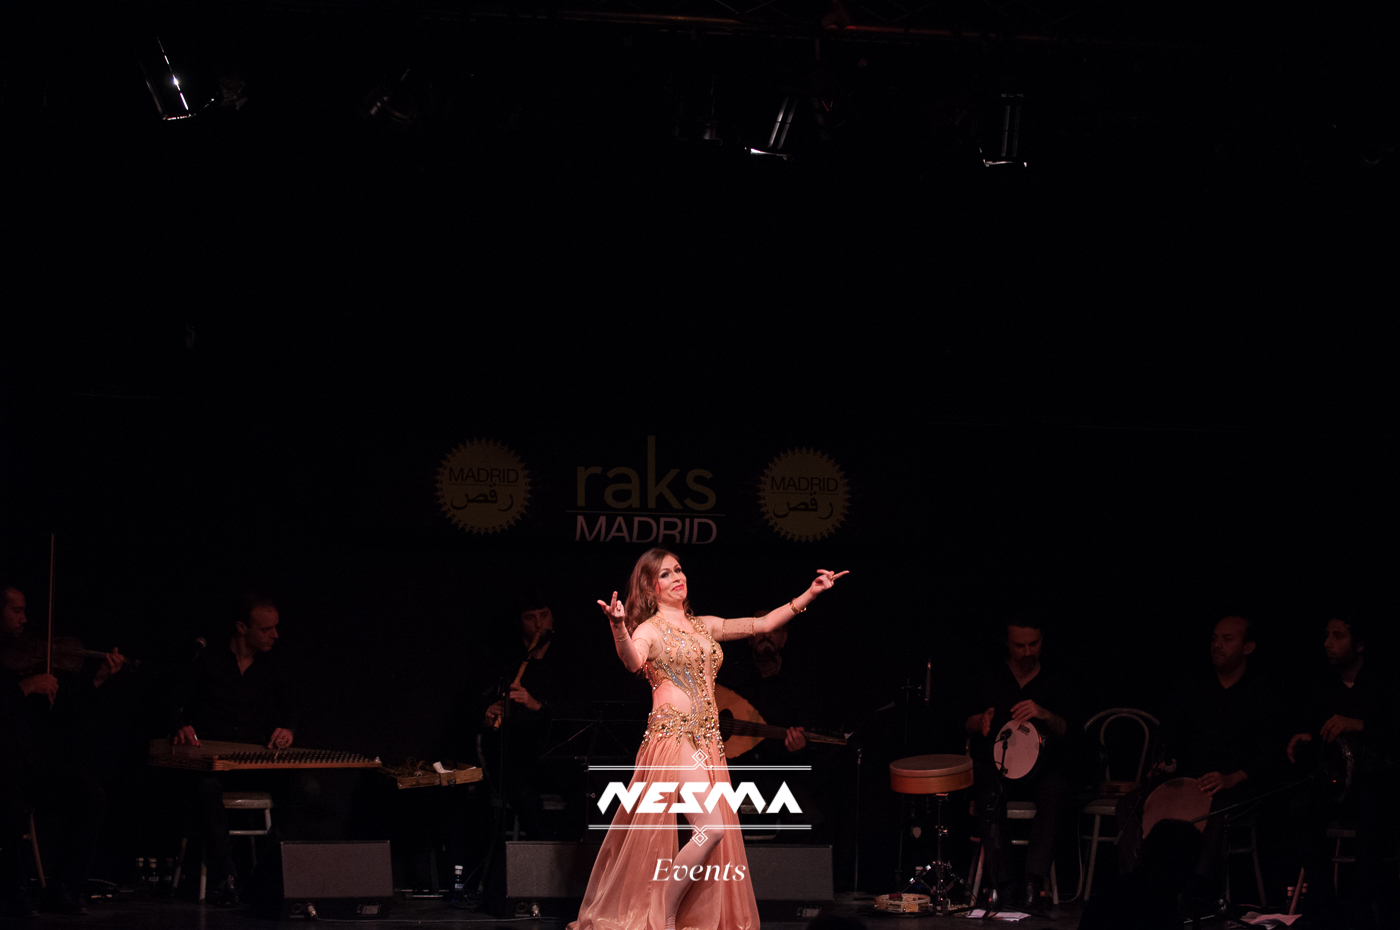 Raks Madrid 2018 - Nesma Events